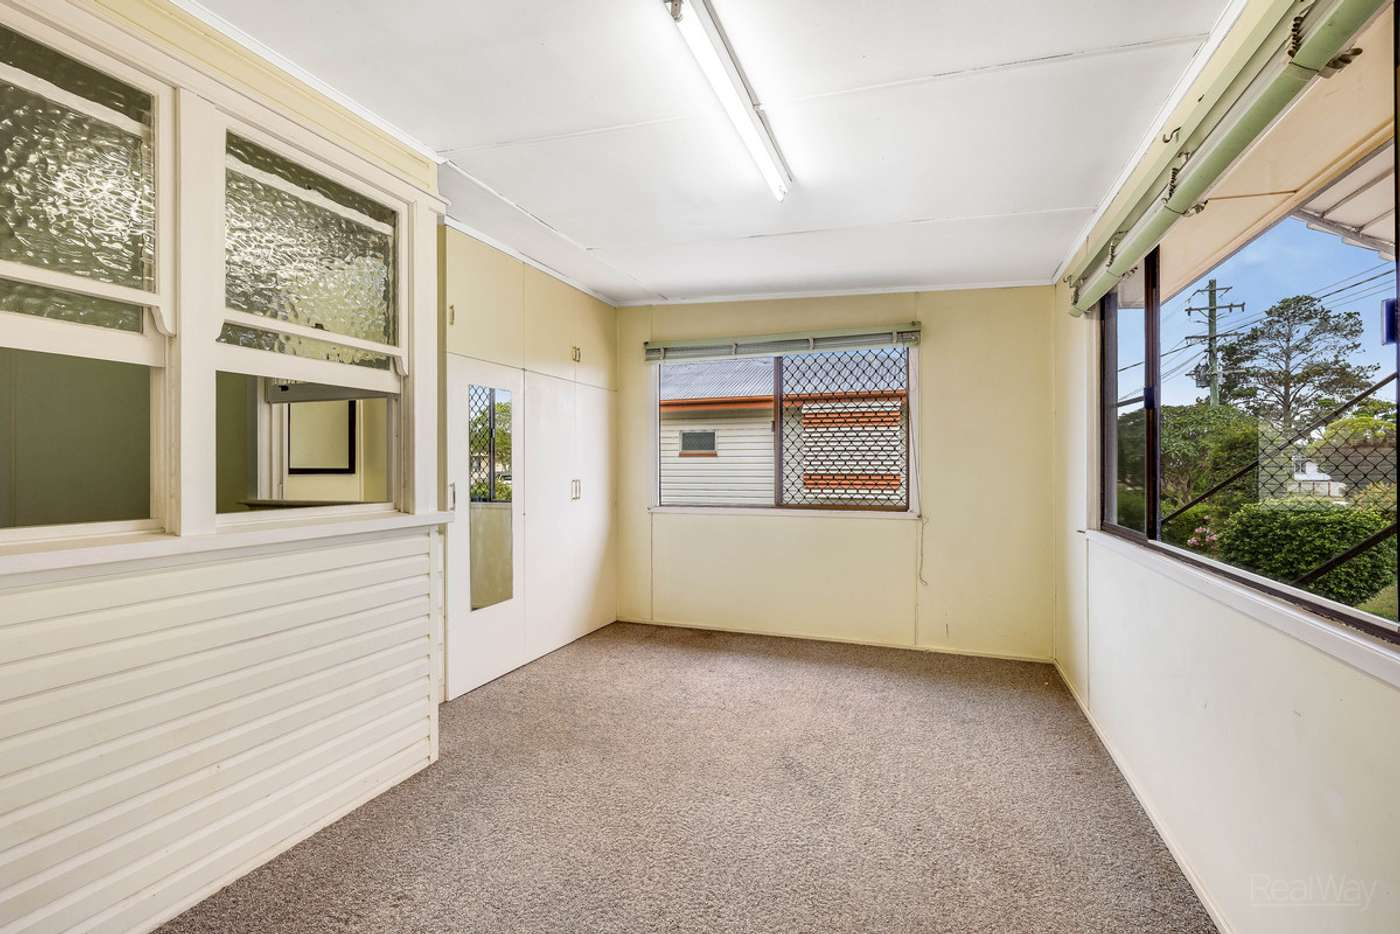 Sixth view of Homely house listing, 19A Buckland Street, Harristown QLD 4350